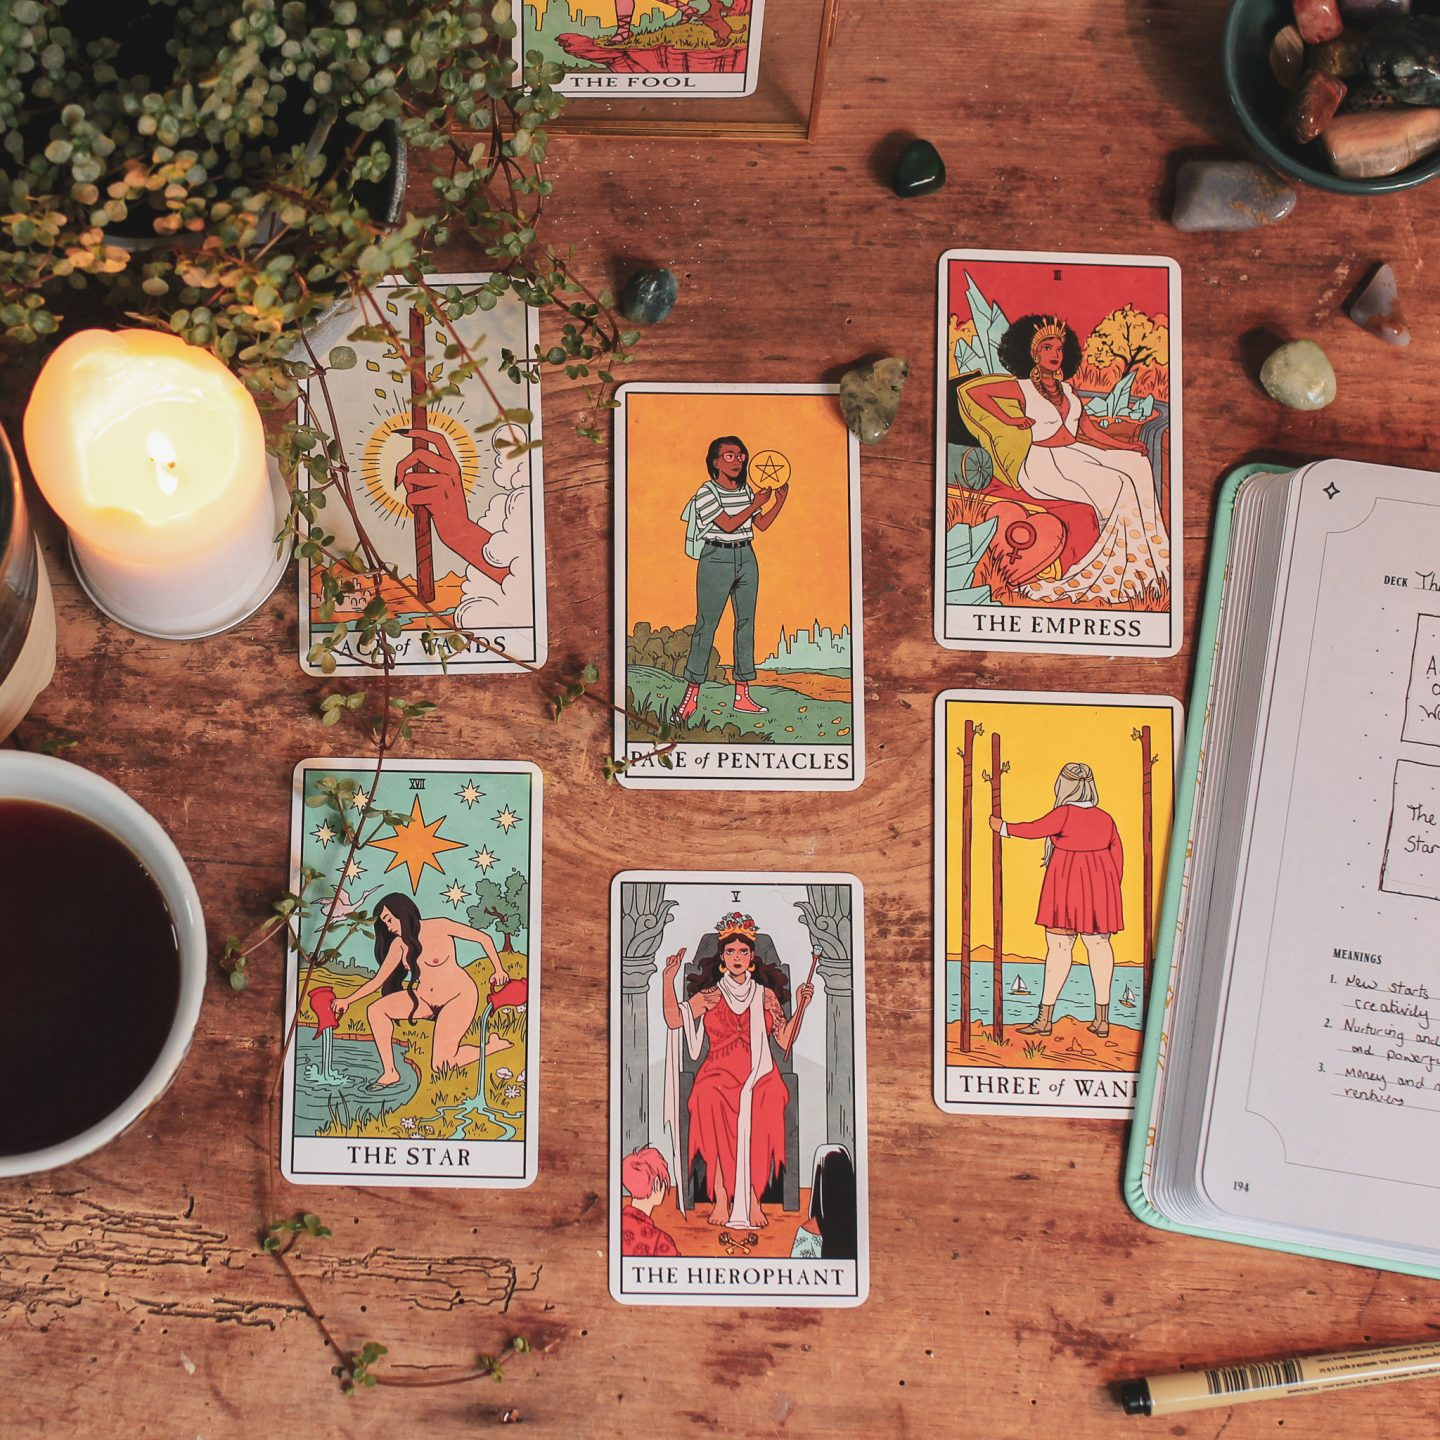 Image: Lisa Strele's Modern Witch Tarot Deck and Journal.